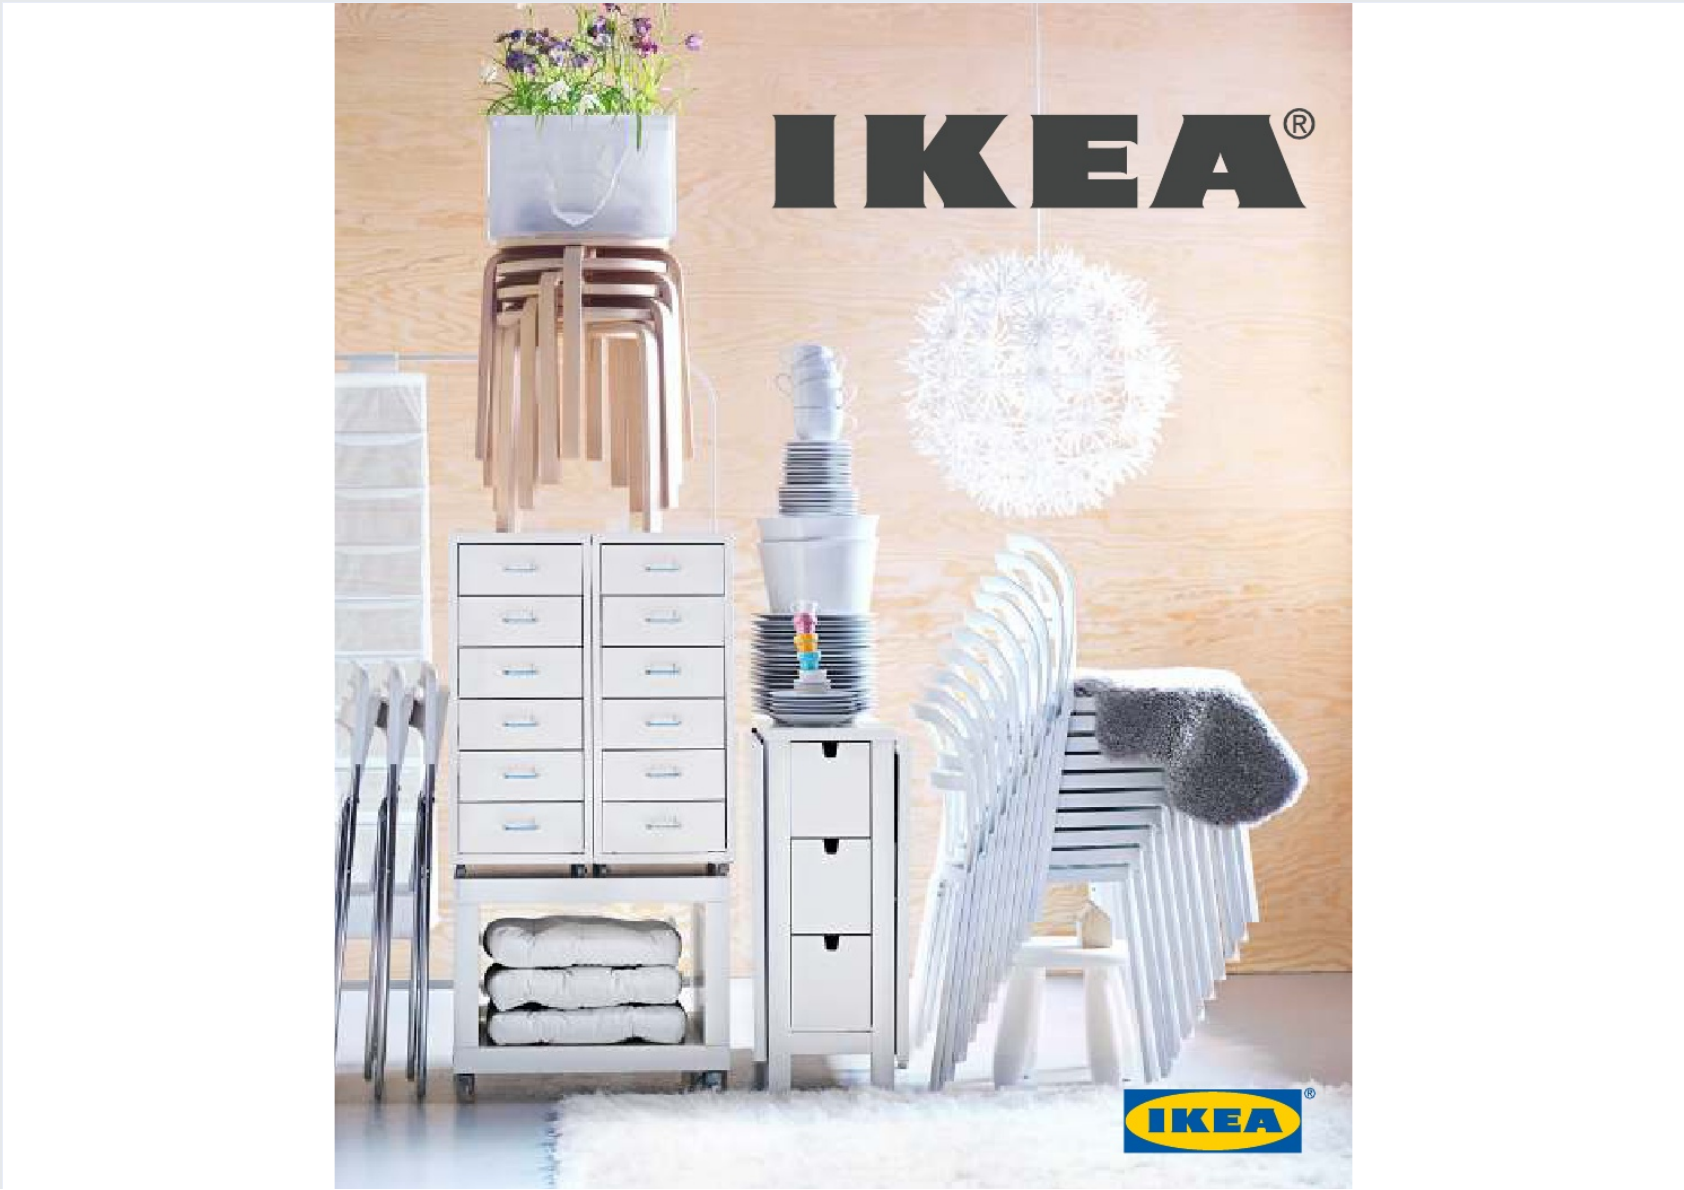 Ikea Cuscino Gosa Vadd.Ikea Catalogue 2012